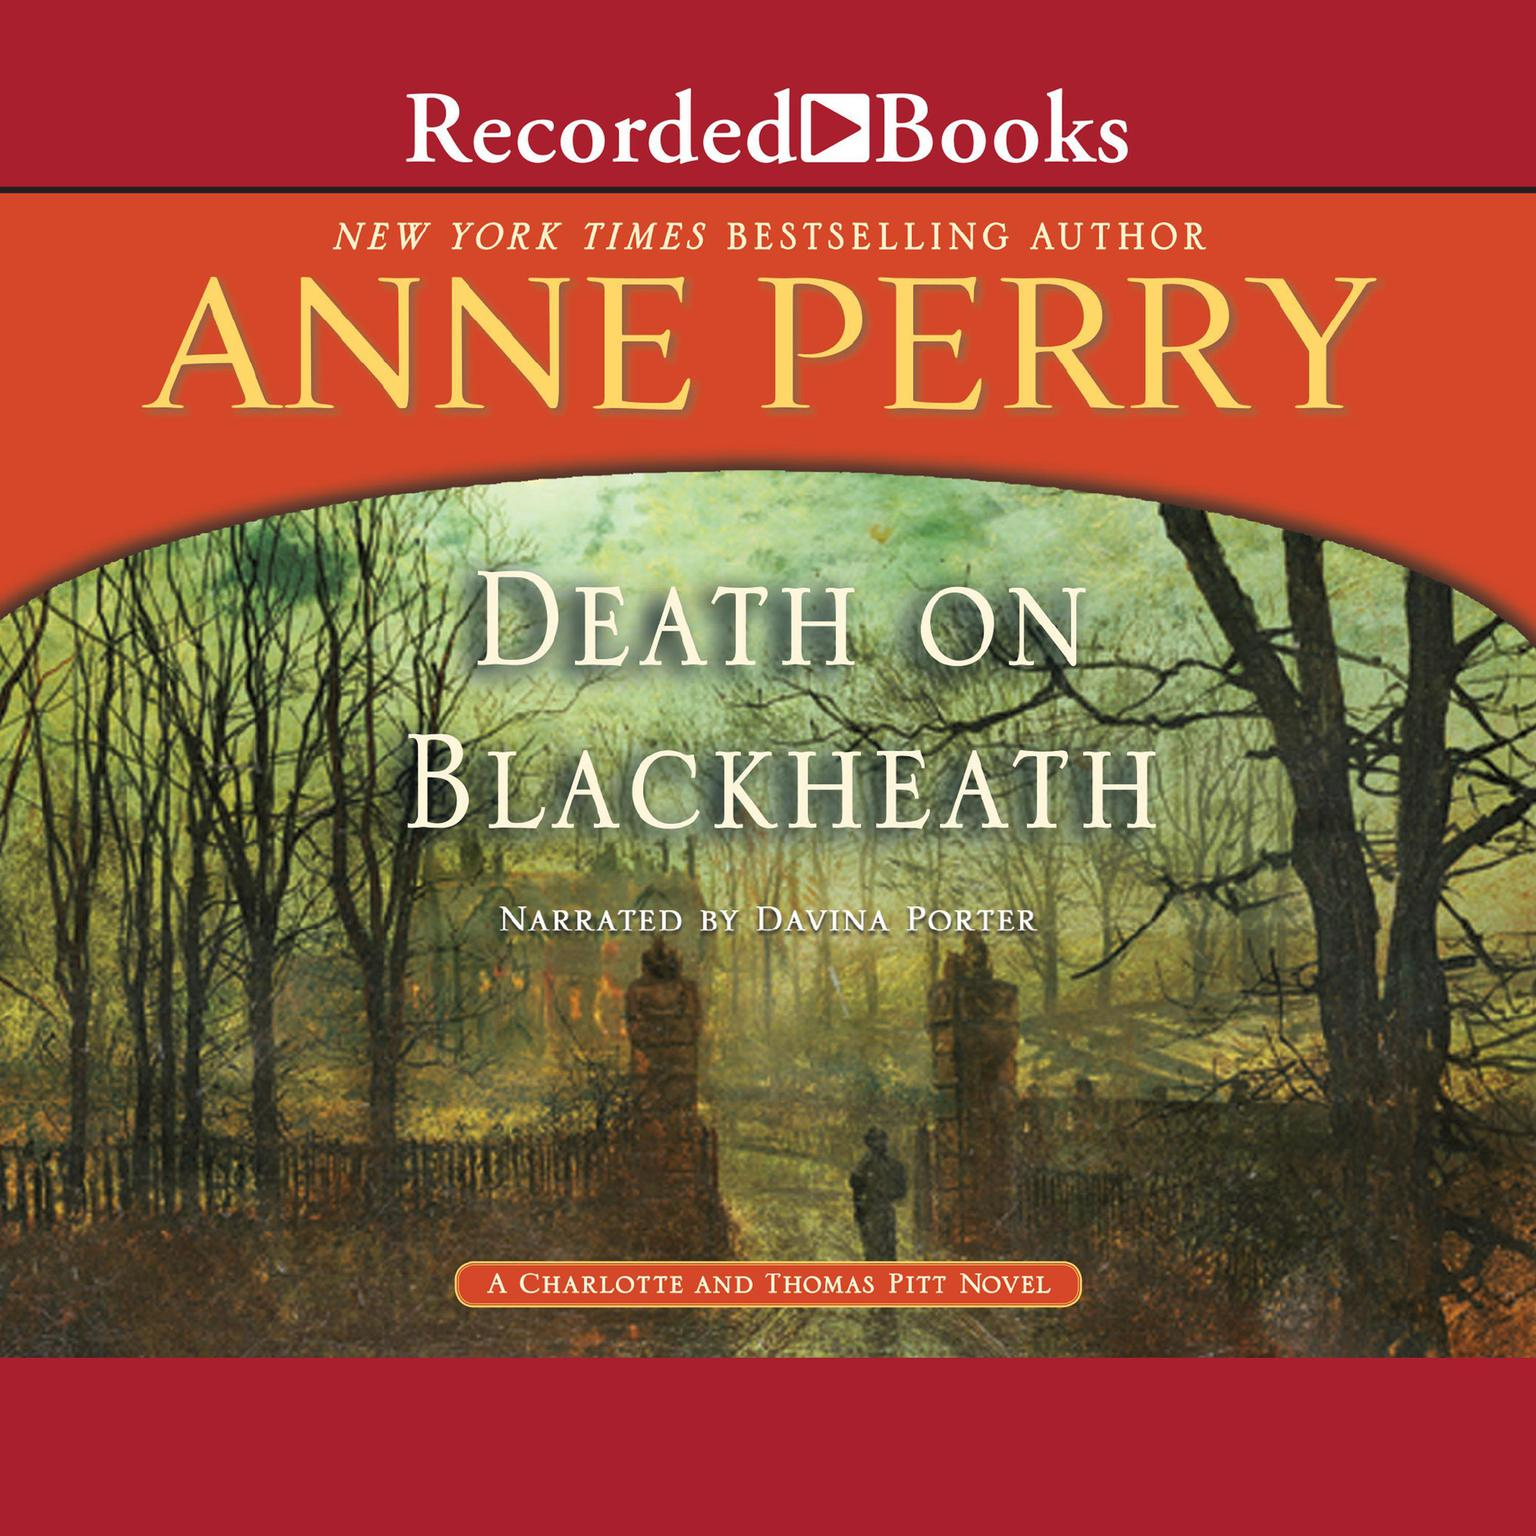 Printable Death on Blackheath: A Charlotte and Thomas Pitt Novel Audiobook Cover Art